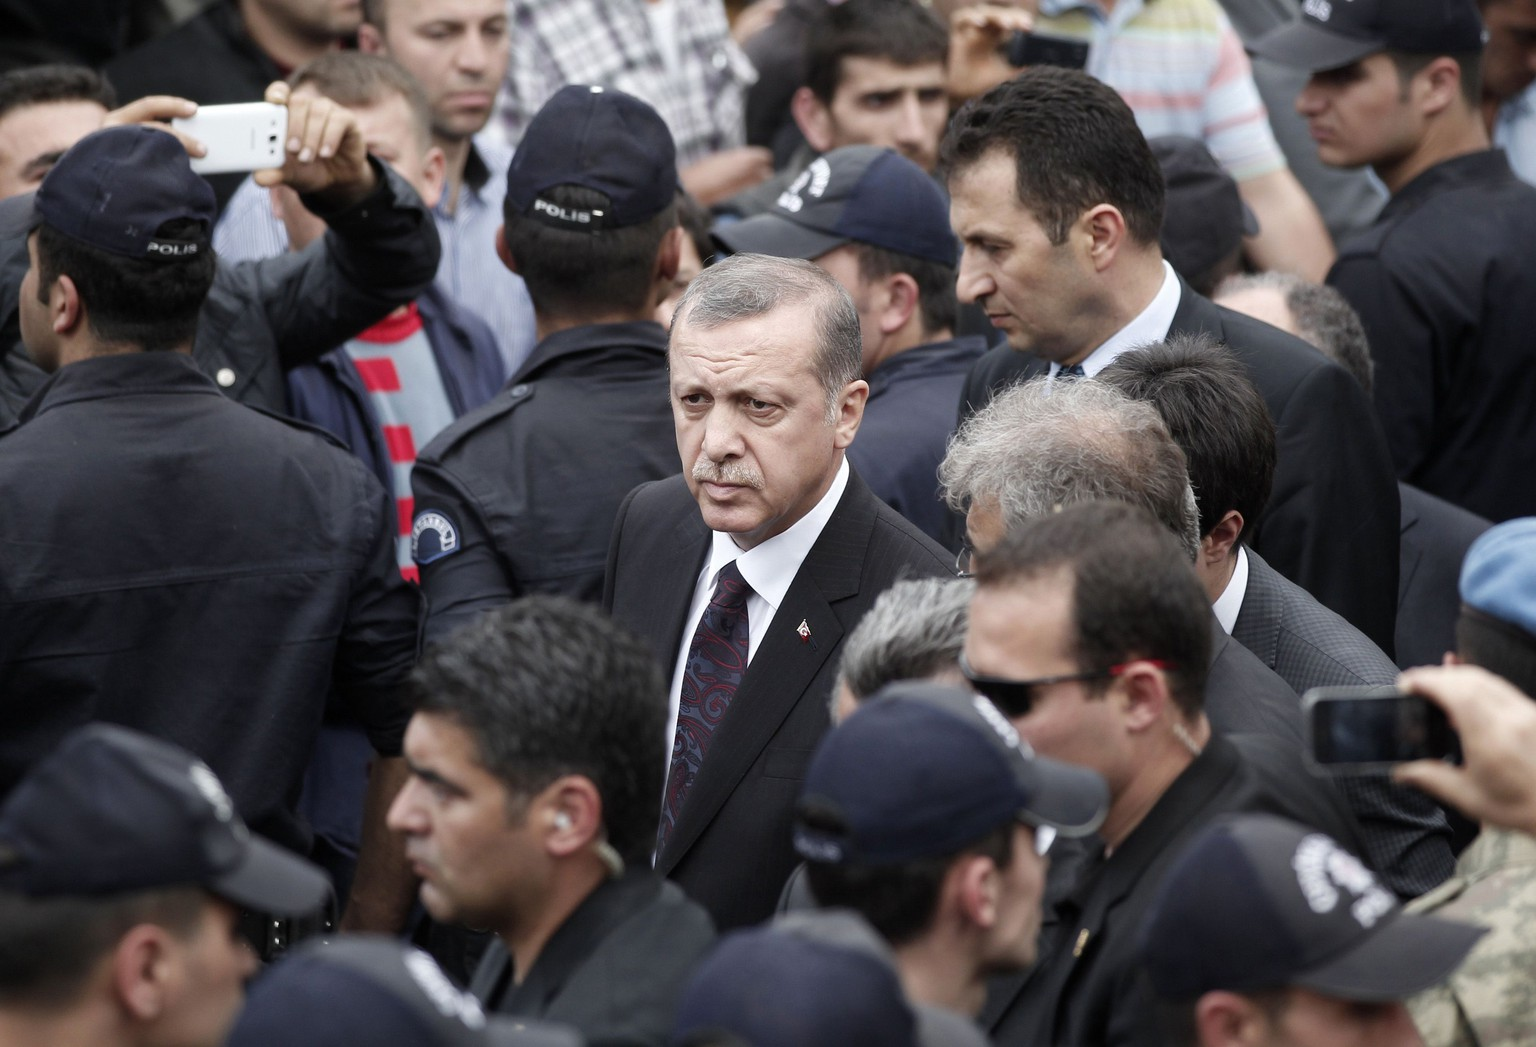 Turkey's Prime Minister Tayyip Erdogan (C) walks during his visit to Soma, a district in Turkey's western province of Manisa, after a coal mine explosion May 14, 2014. Rescuers pulled more dead and injured from the coal mine in western Turkey on Wednesday more than 19 hours after the explosion, bringing the death toll to 205 in what could become the nation's worst ever mining disaster. Hundreds more were still believed to be trapped in the mine in Soma, about 480 kilometres (298 miles) southwest of Istanbul. The explosion, which triggered a fire, occurred shortly after 3 pm (1200 GMT) on Tuesday. REUTERS/ Osman Orsal (TURKEY - Tags: DISASTER POLITICS)